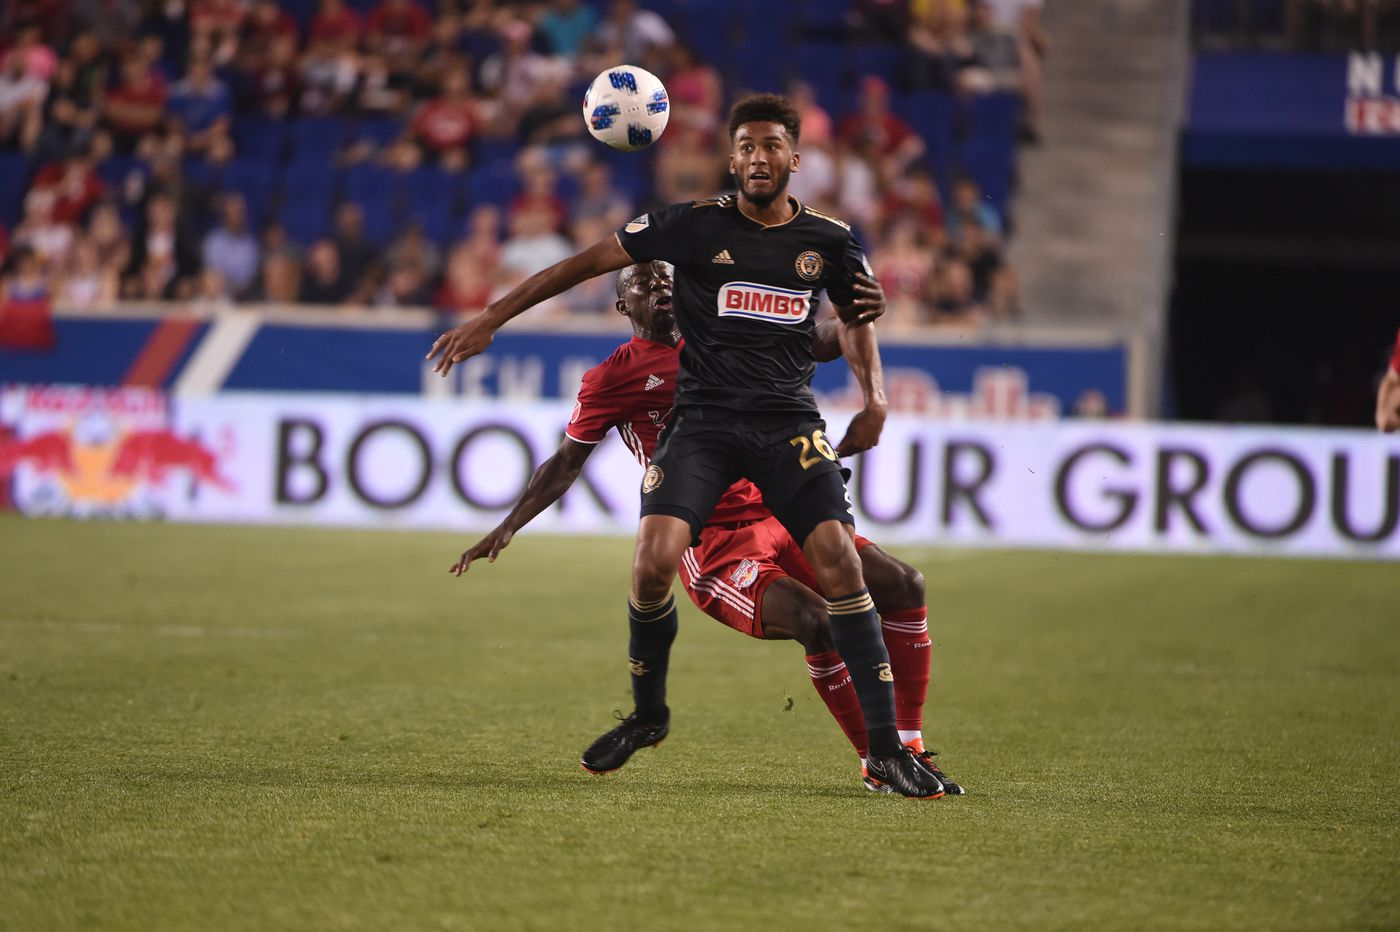 Union ready for a rivalry game in U.S. Open Cup as New York Red Bulls visit